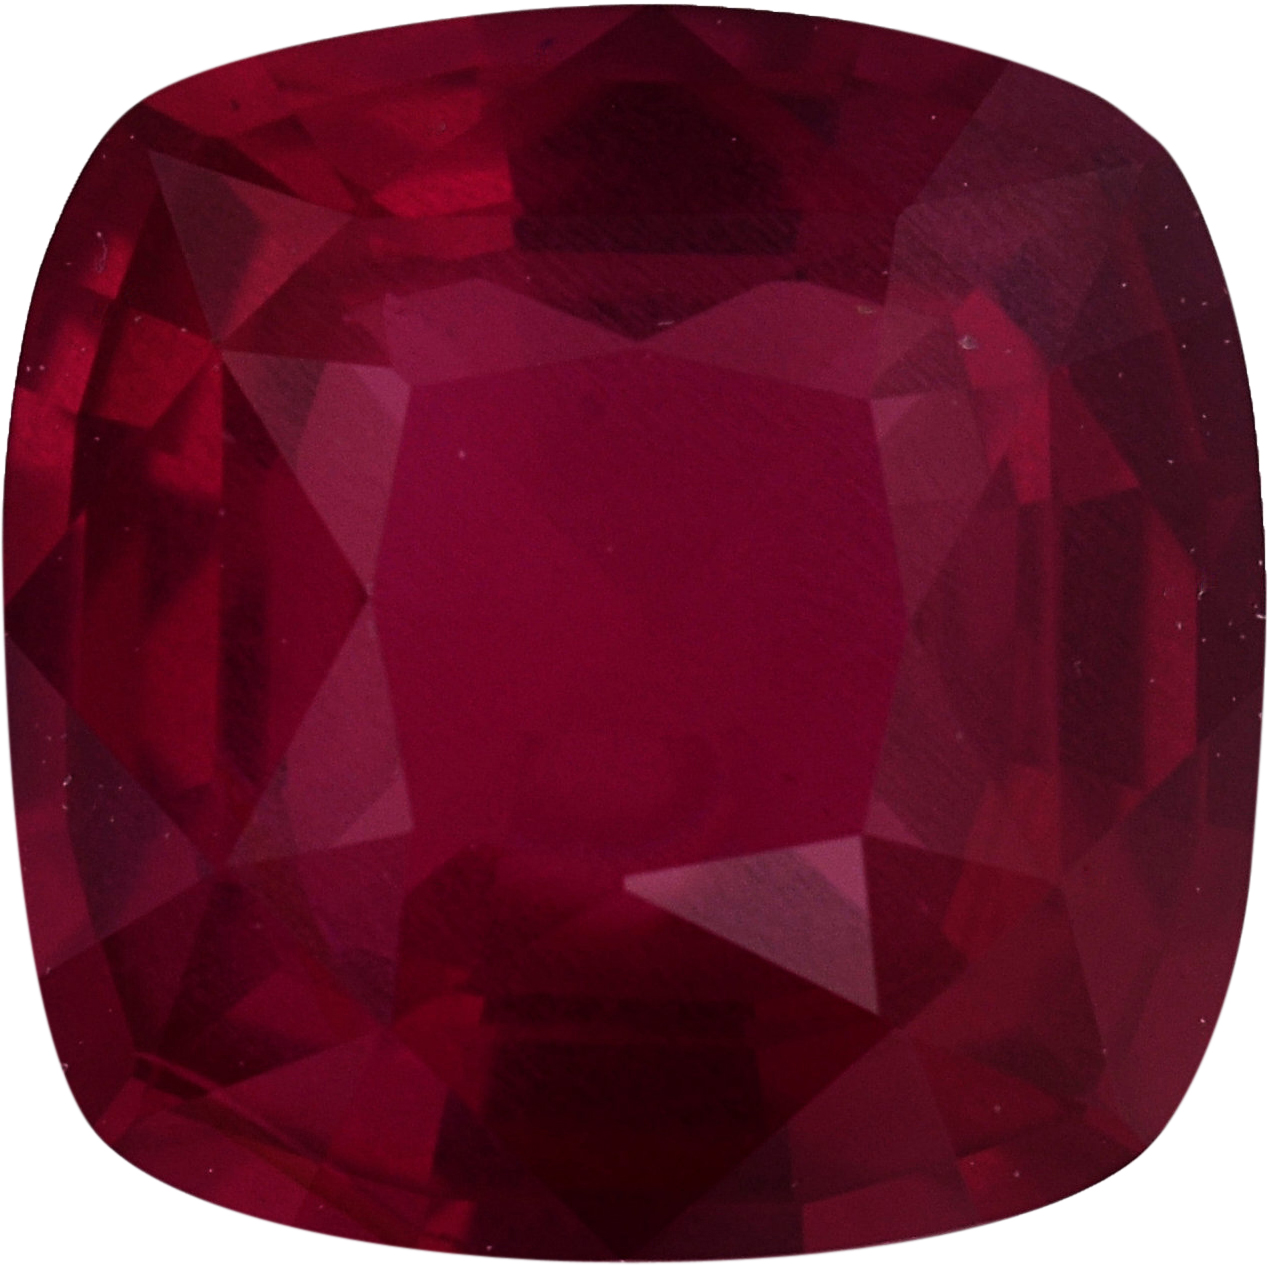 Bright Loose Ruby Gem in Antique Square Cut, Deep Red Color, 6.13 x 6.08 mm, 1.2 carats